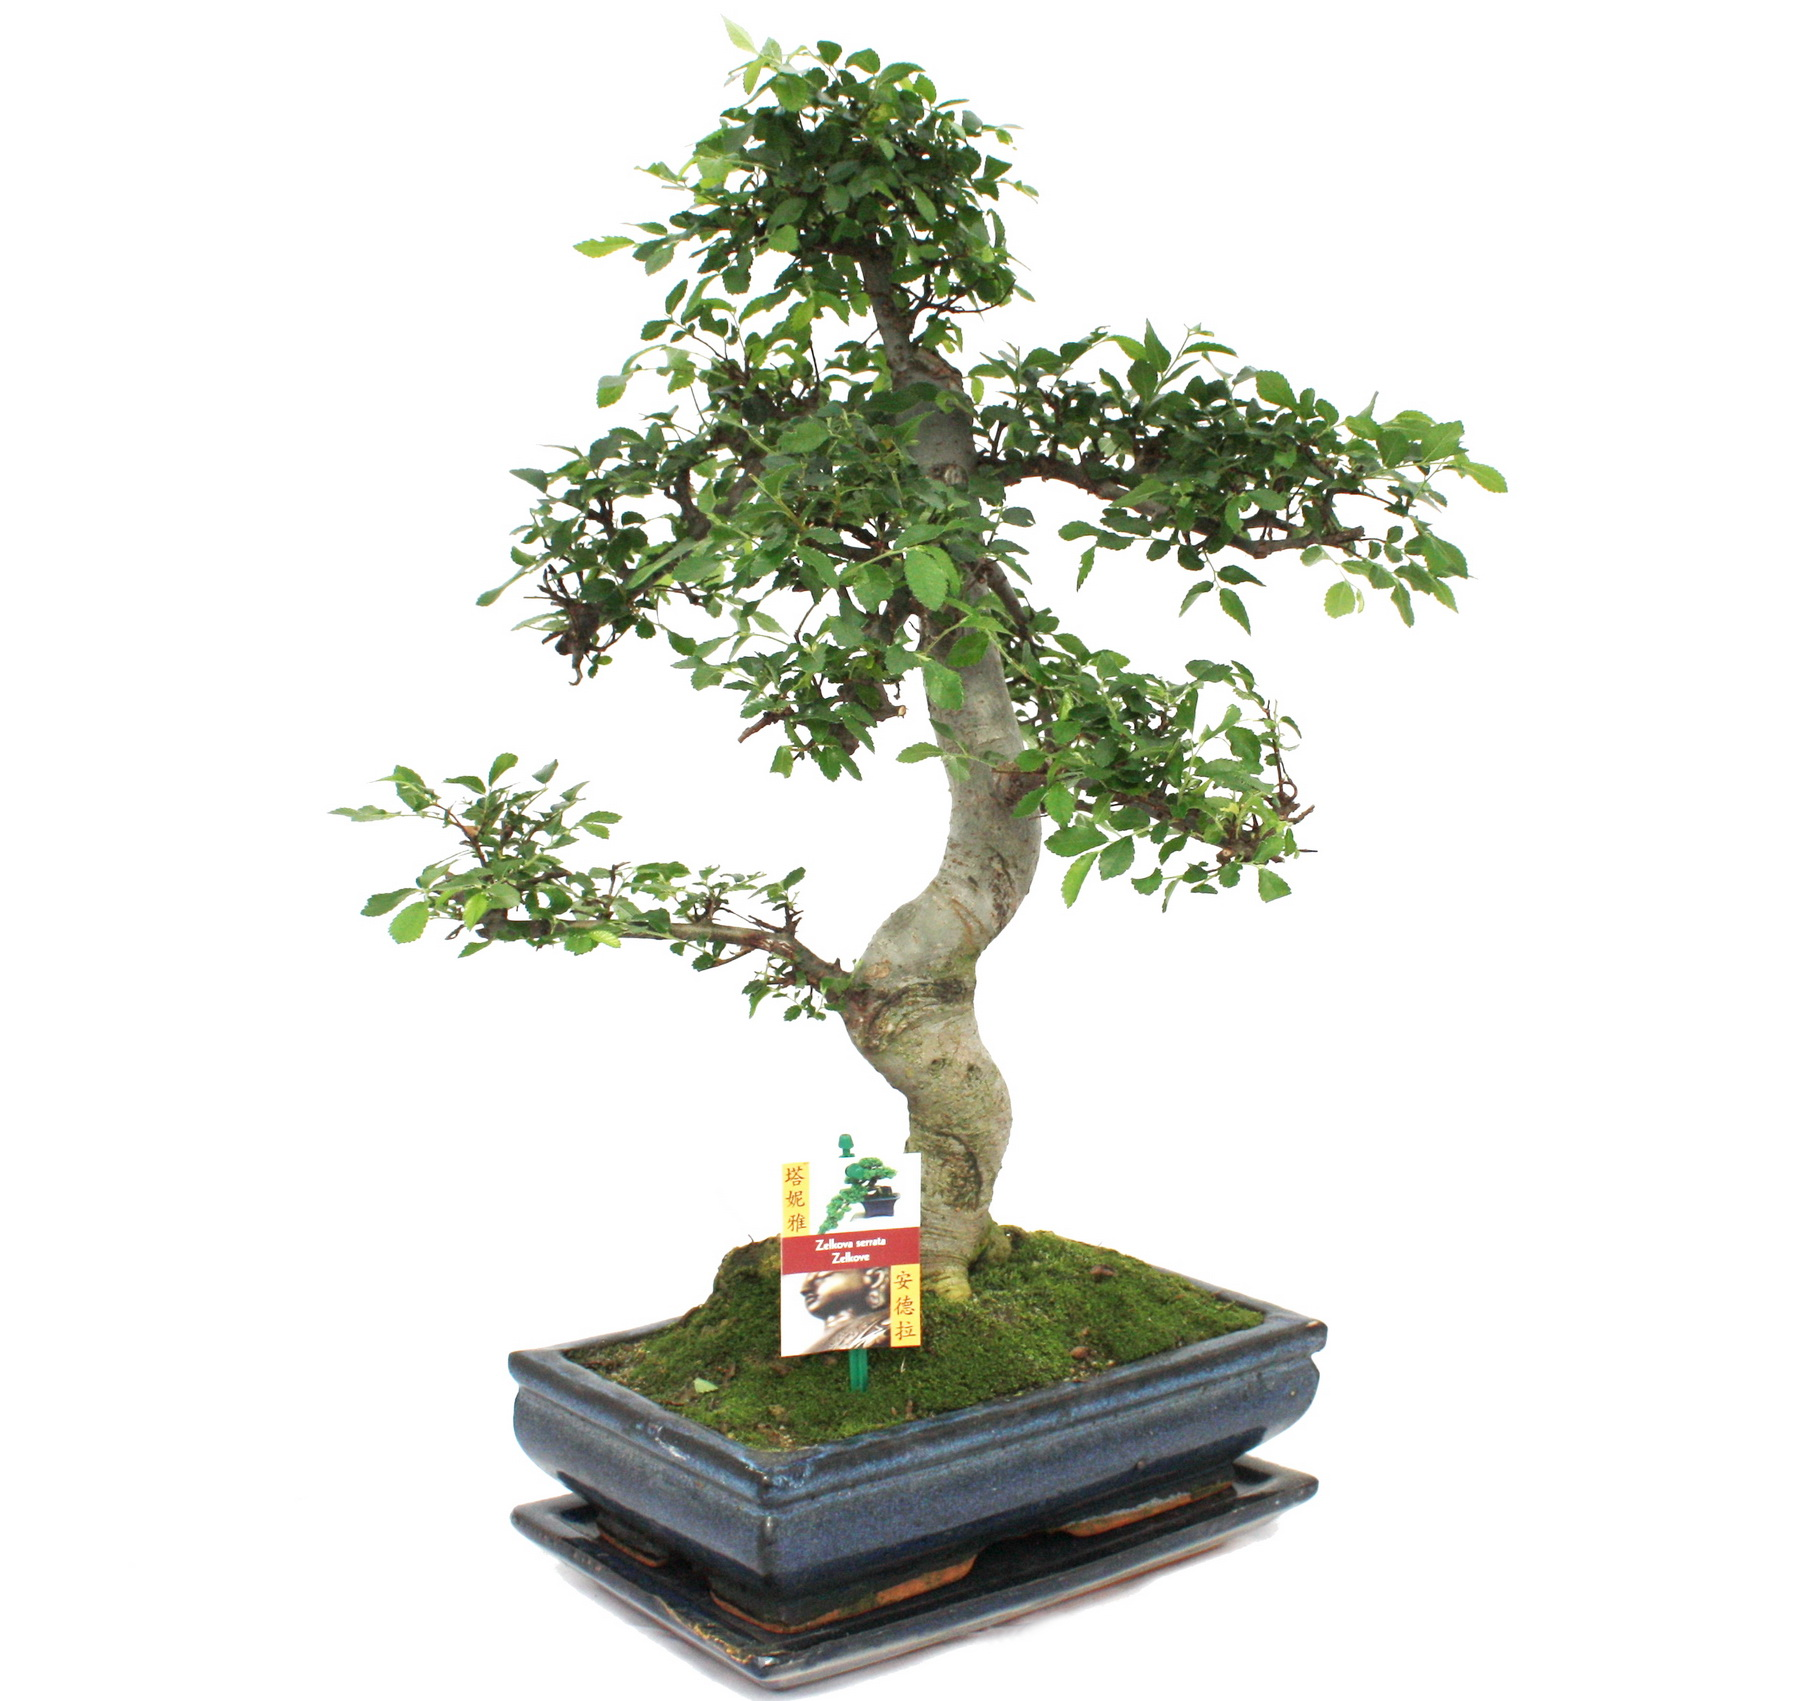 bonsai chinesische ulme ulmus parviflora ca 12 15 jahre ebay. Black Bedroom Furniture Sets. Home Design Ideas